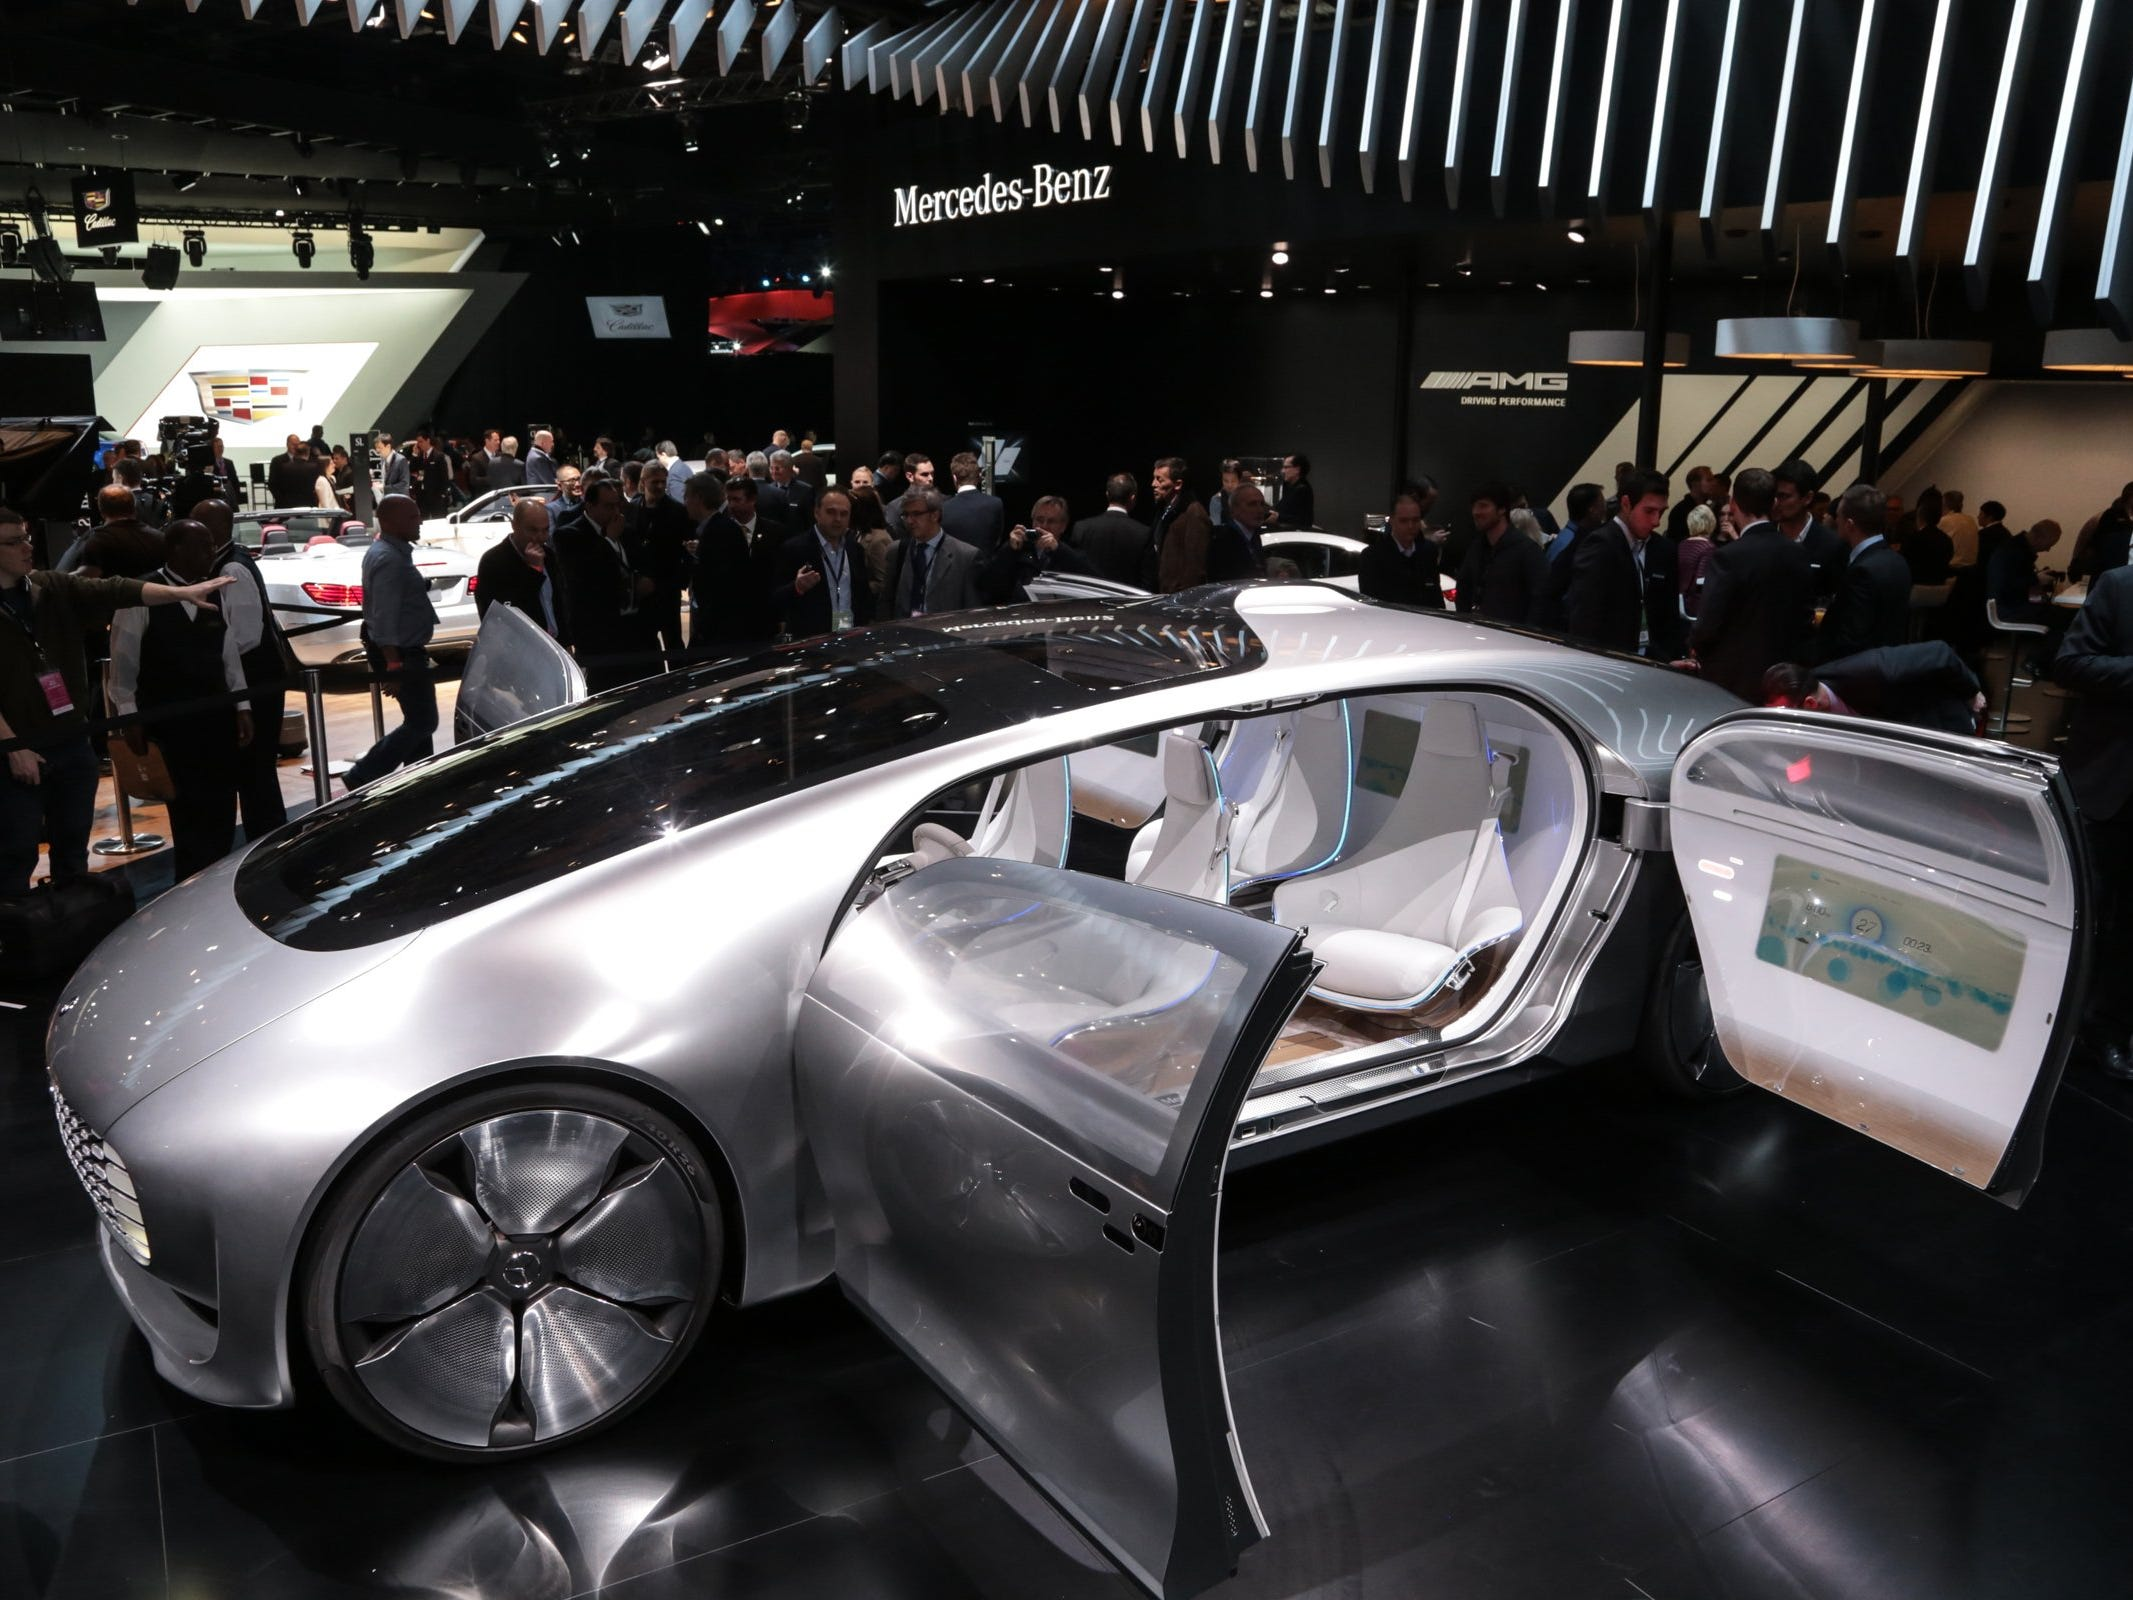 The Mercedes-Benz F 015 concept is introduced to the media during the 2015 North American International Auto Show at Cobo Center on Monday, Jan.12, 2015 in Detroit.